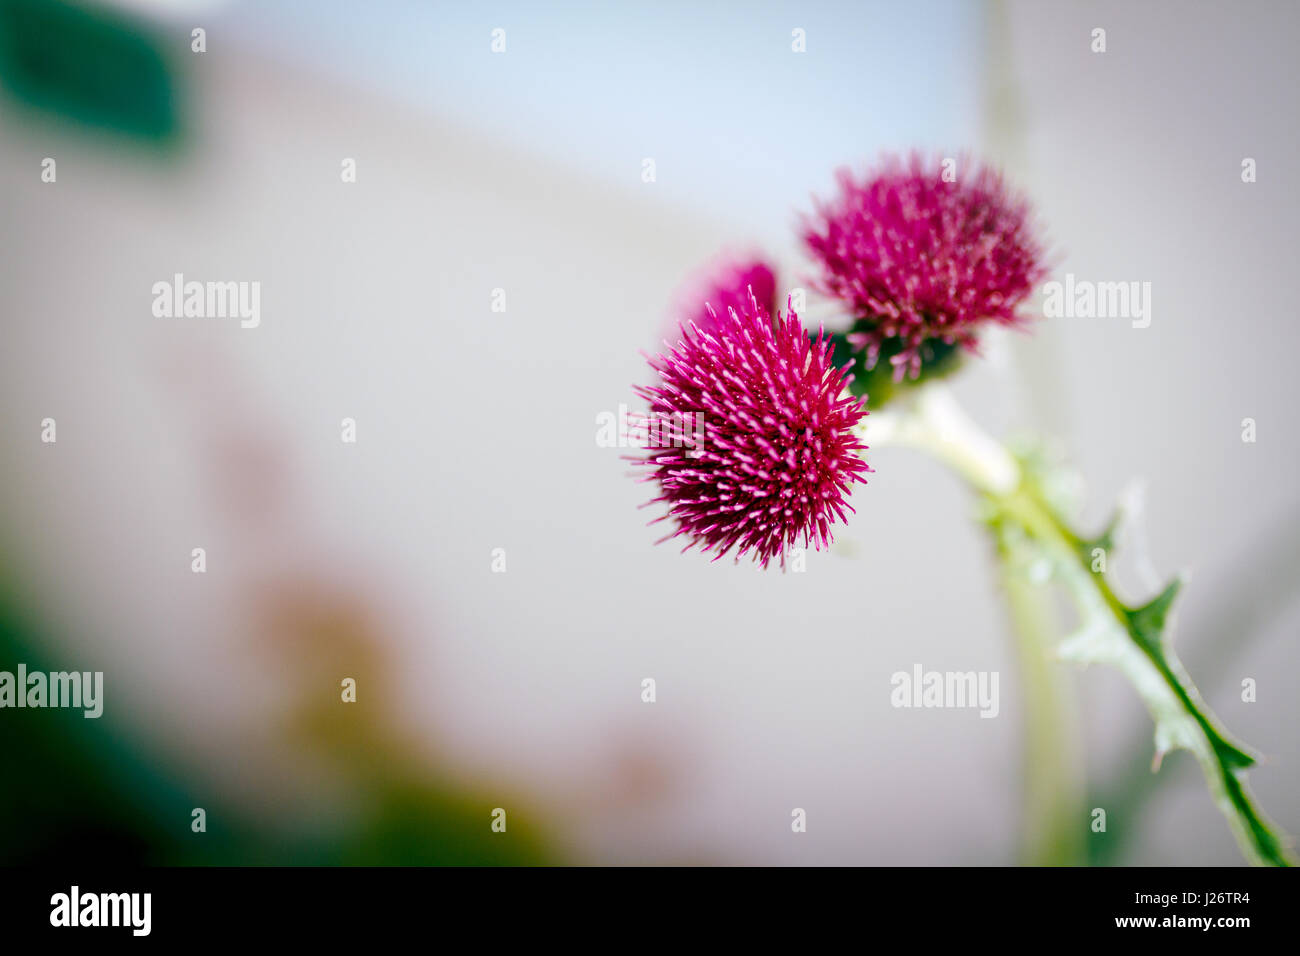 Thistle flowers in late May - Stock Image